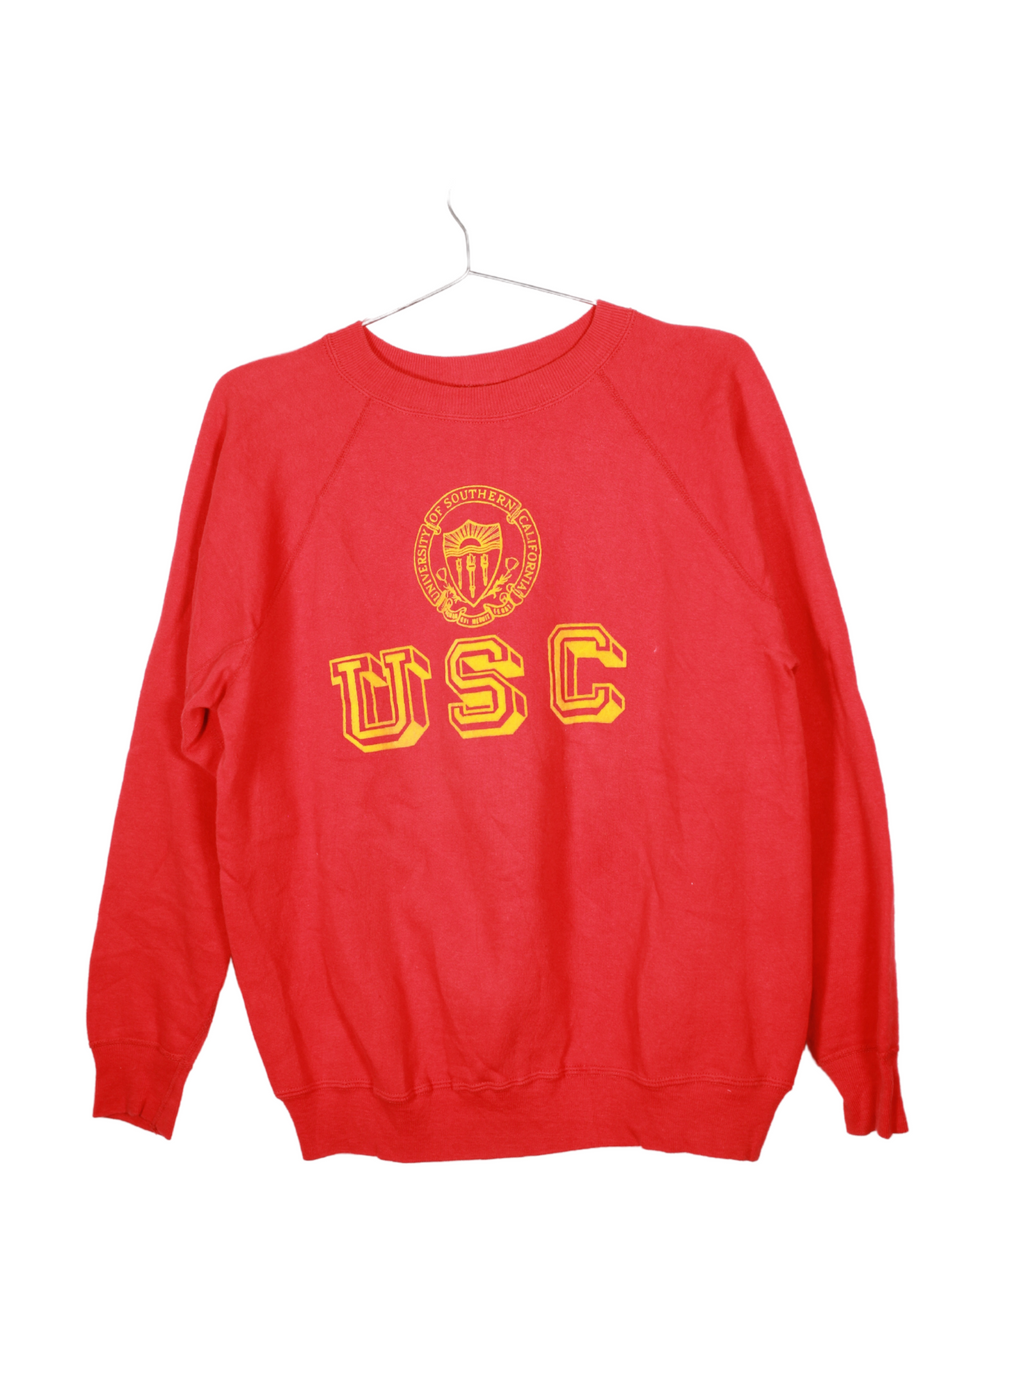 Red Vintage USC Sweatshirt